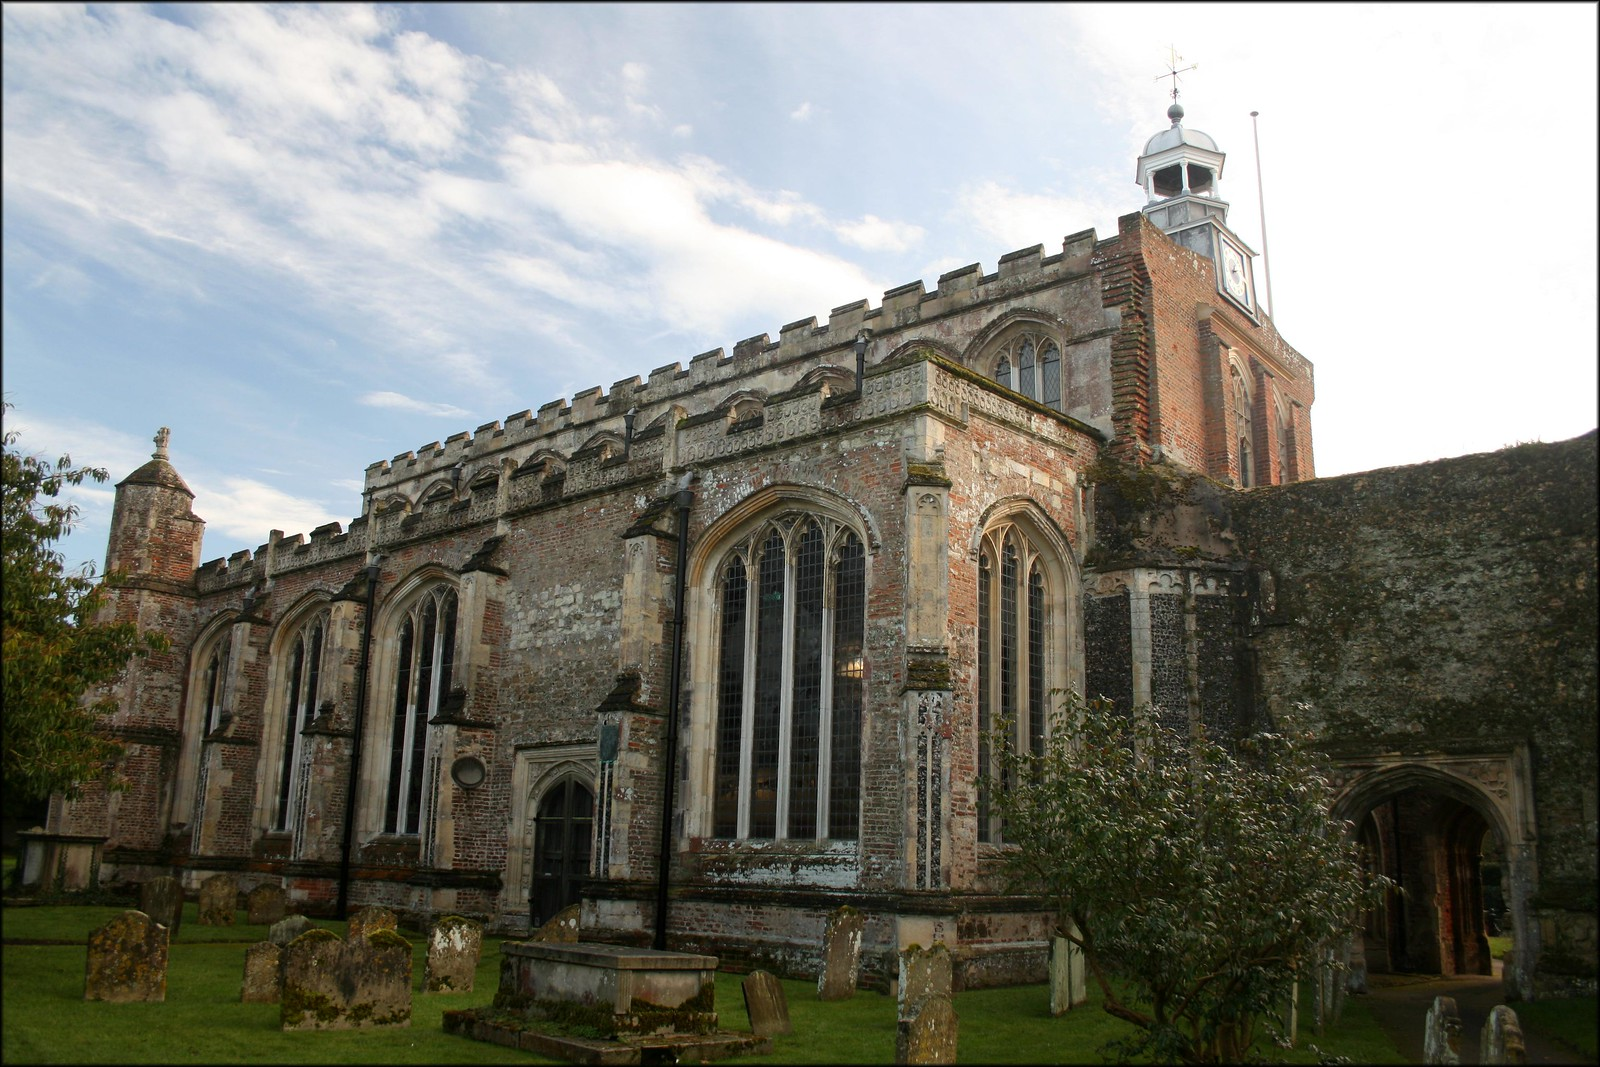 The bell cage at East Bergholt Church